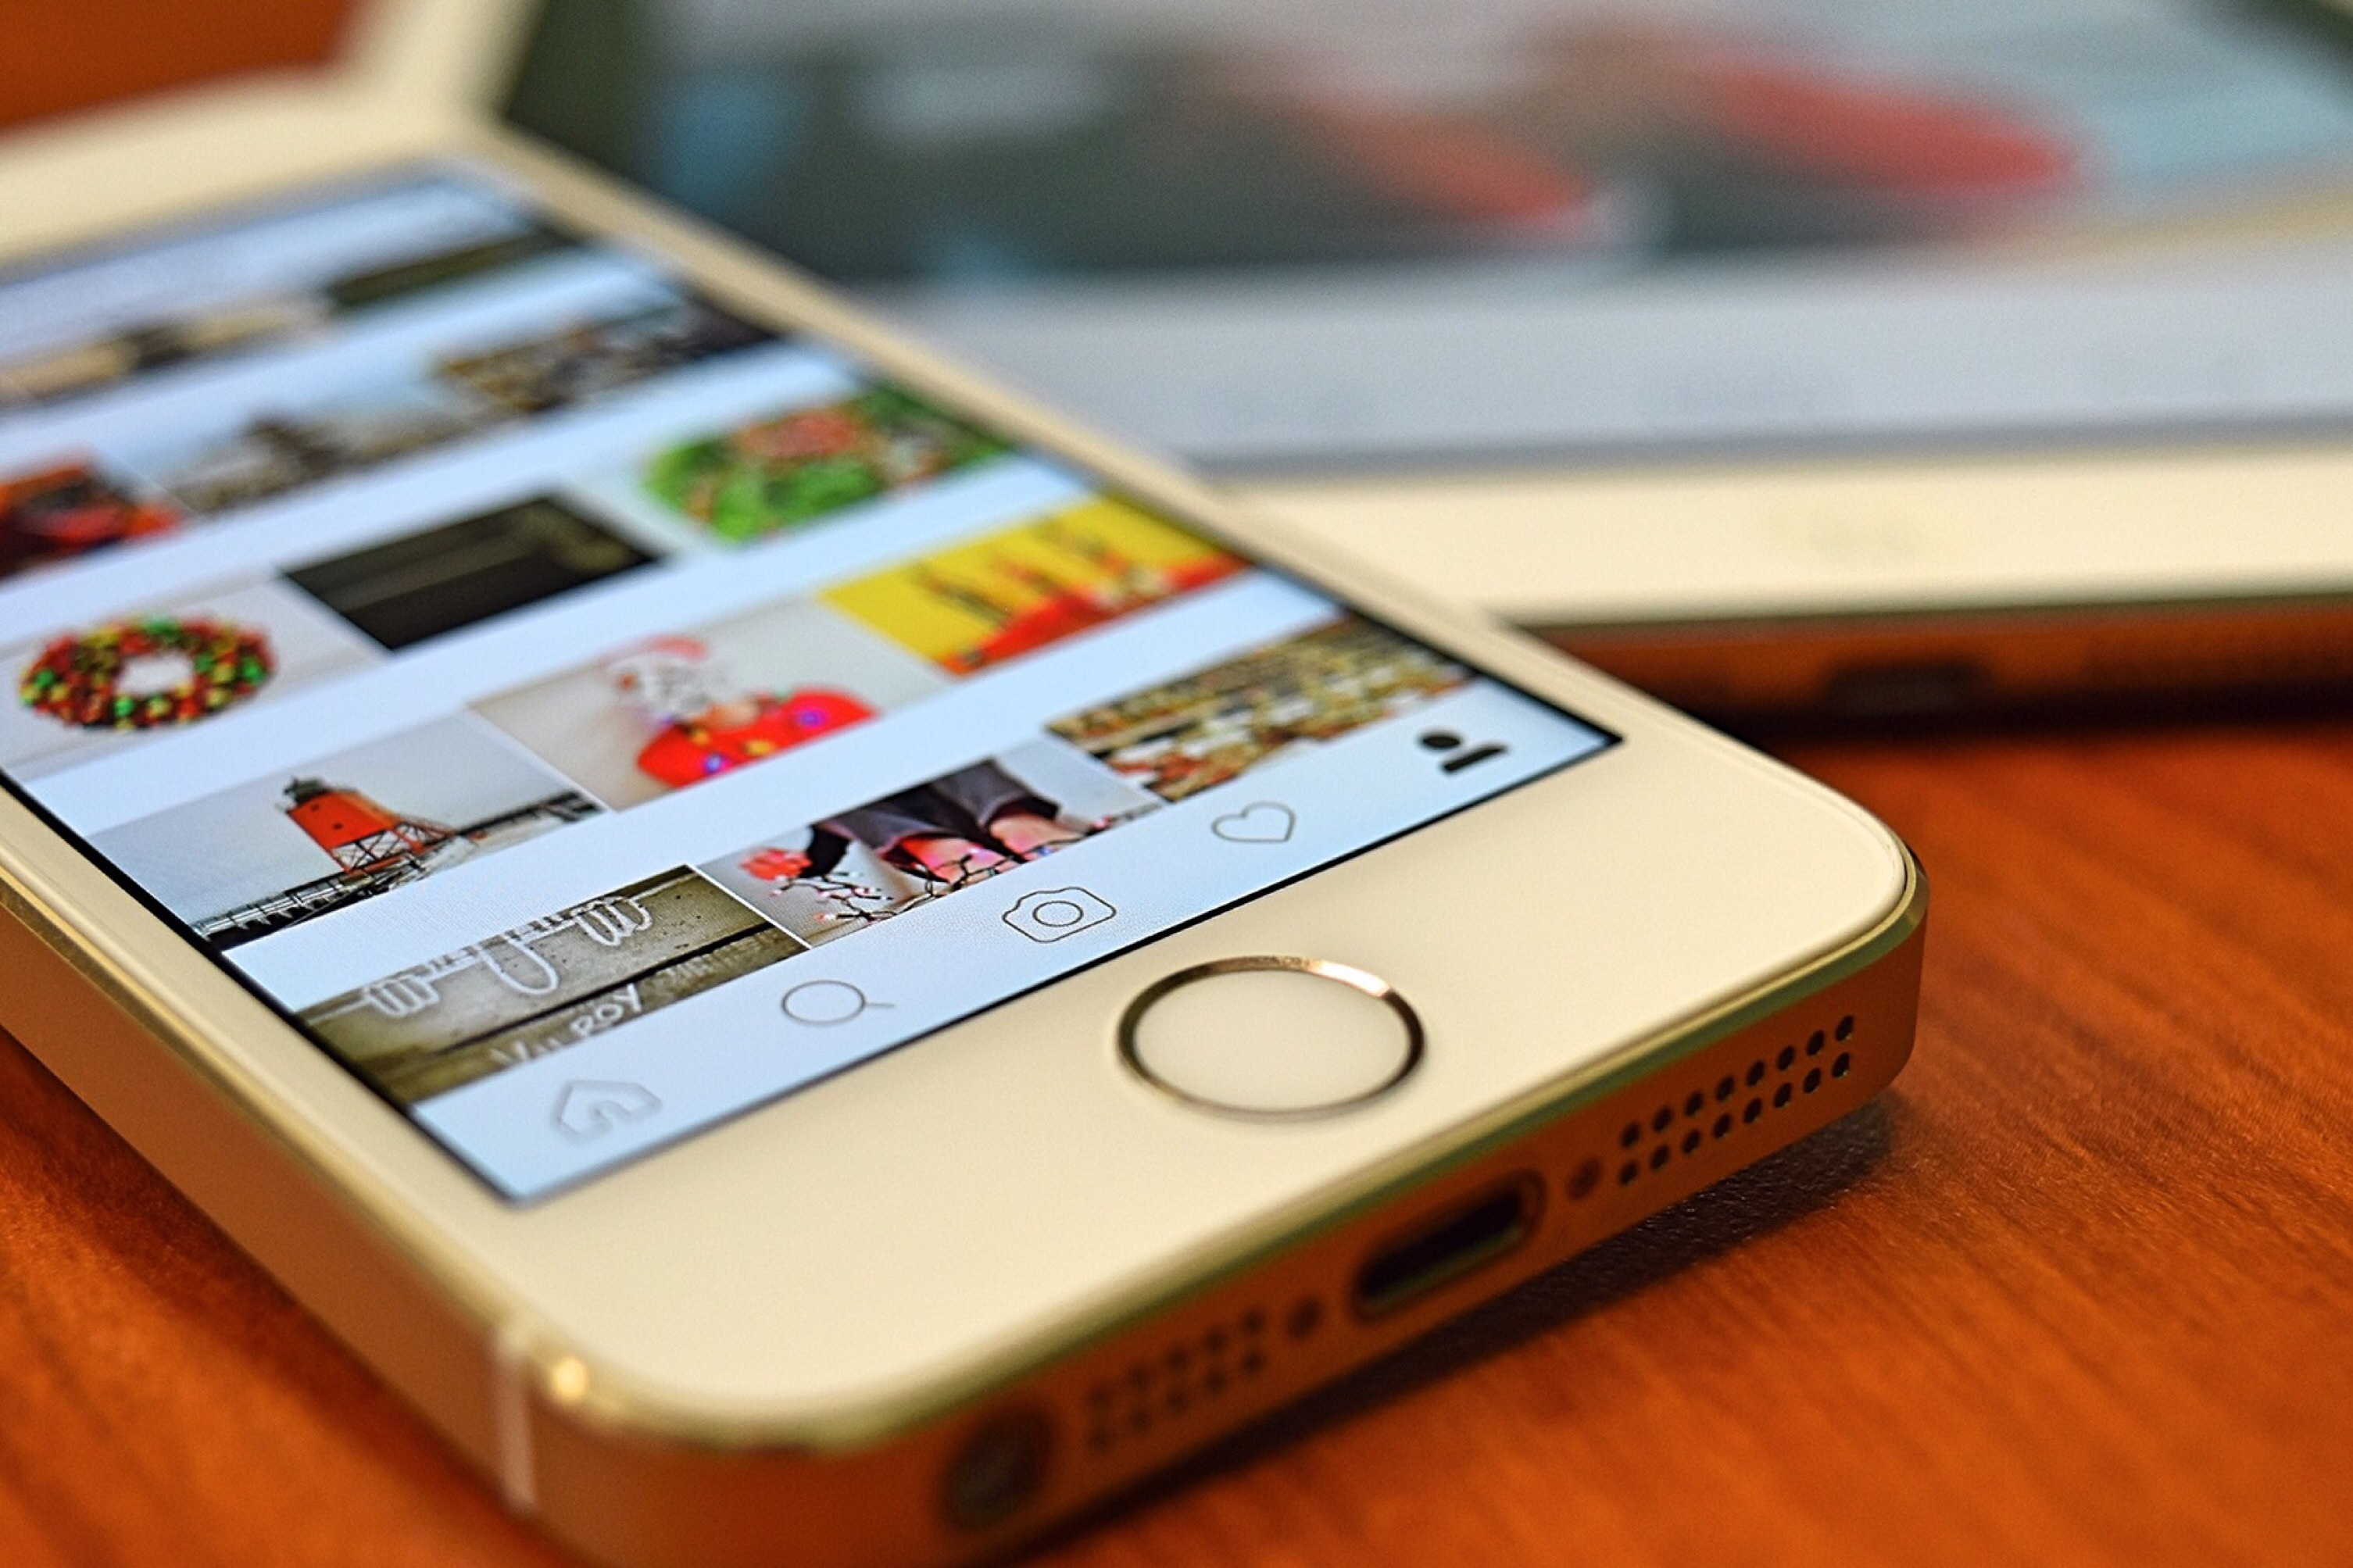 Black And White Phone Wallpaper Silver Iphone 5s Showing Instagram 183 Free Stock Photo